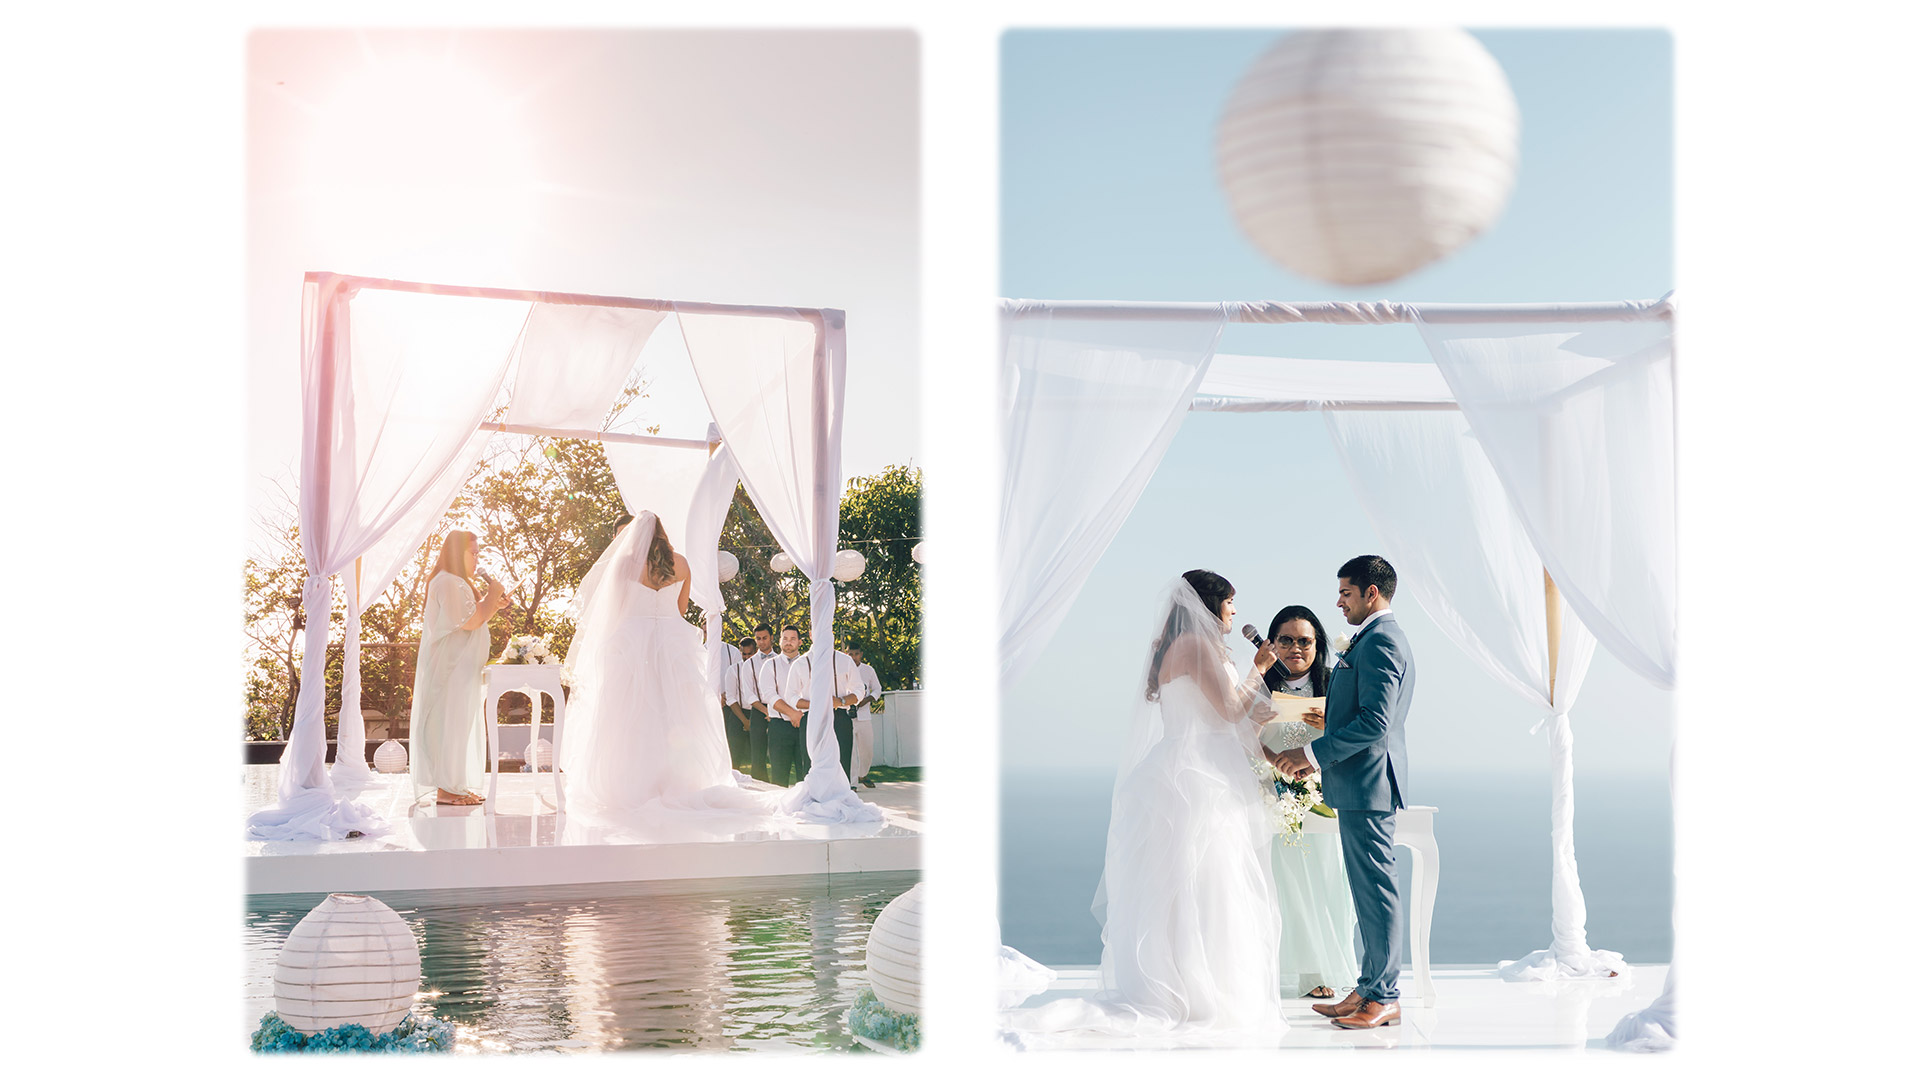 Bali international wedding photographer